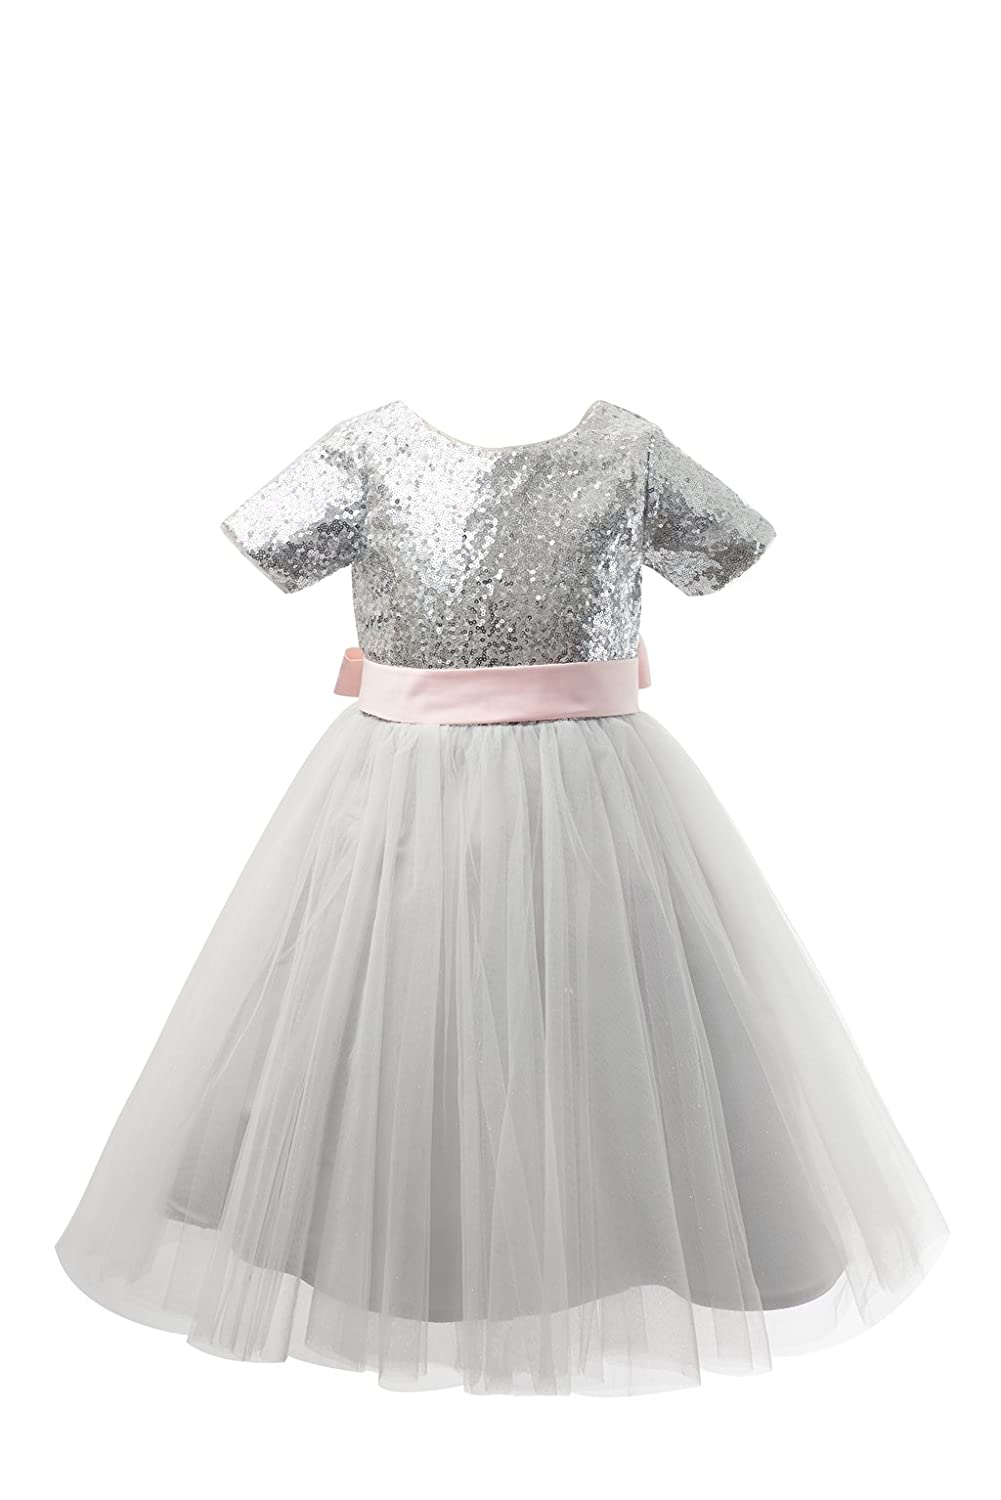 4deeb33b69eb Details about Silver Sequin Tulle Short Sleeves Wedding Flower Girl Dress  Junior Bridesmaid